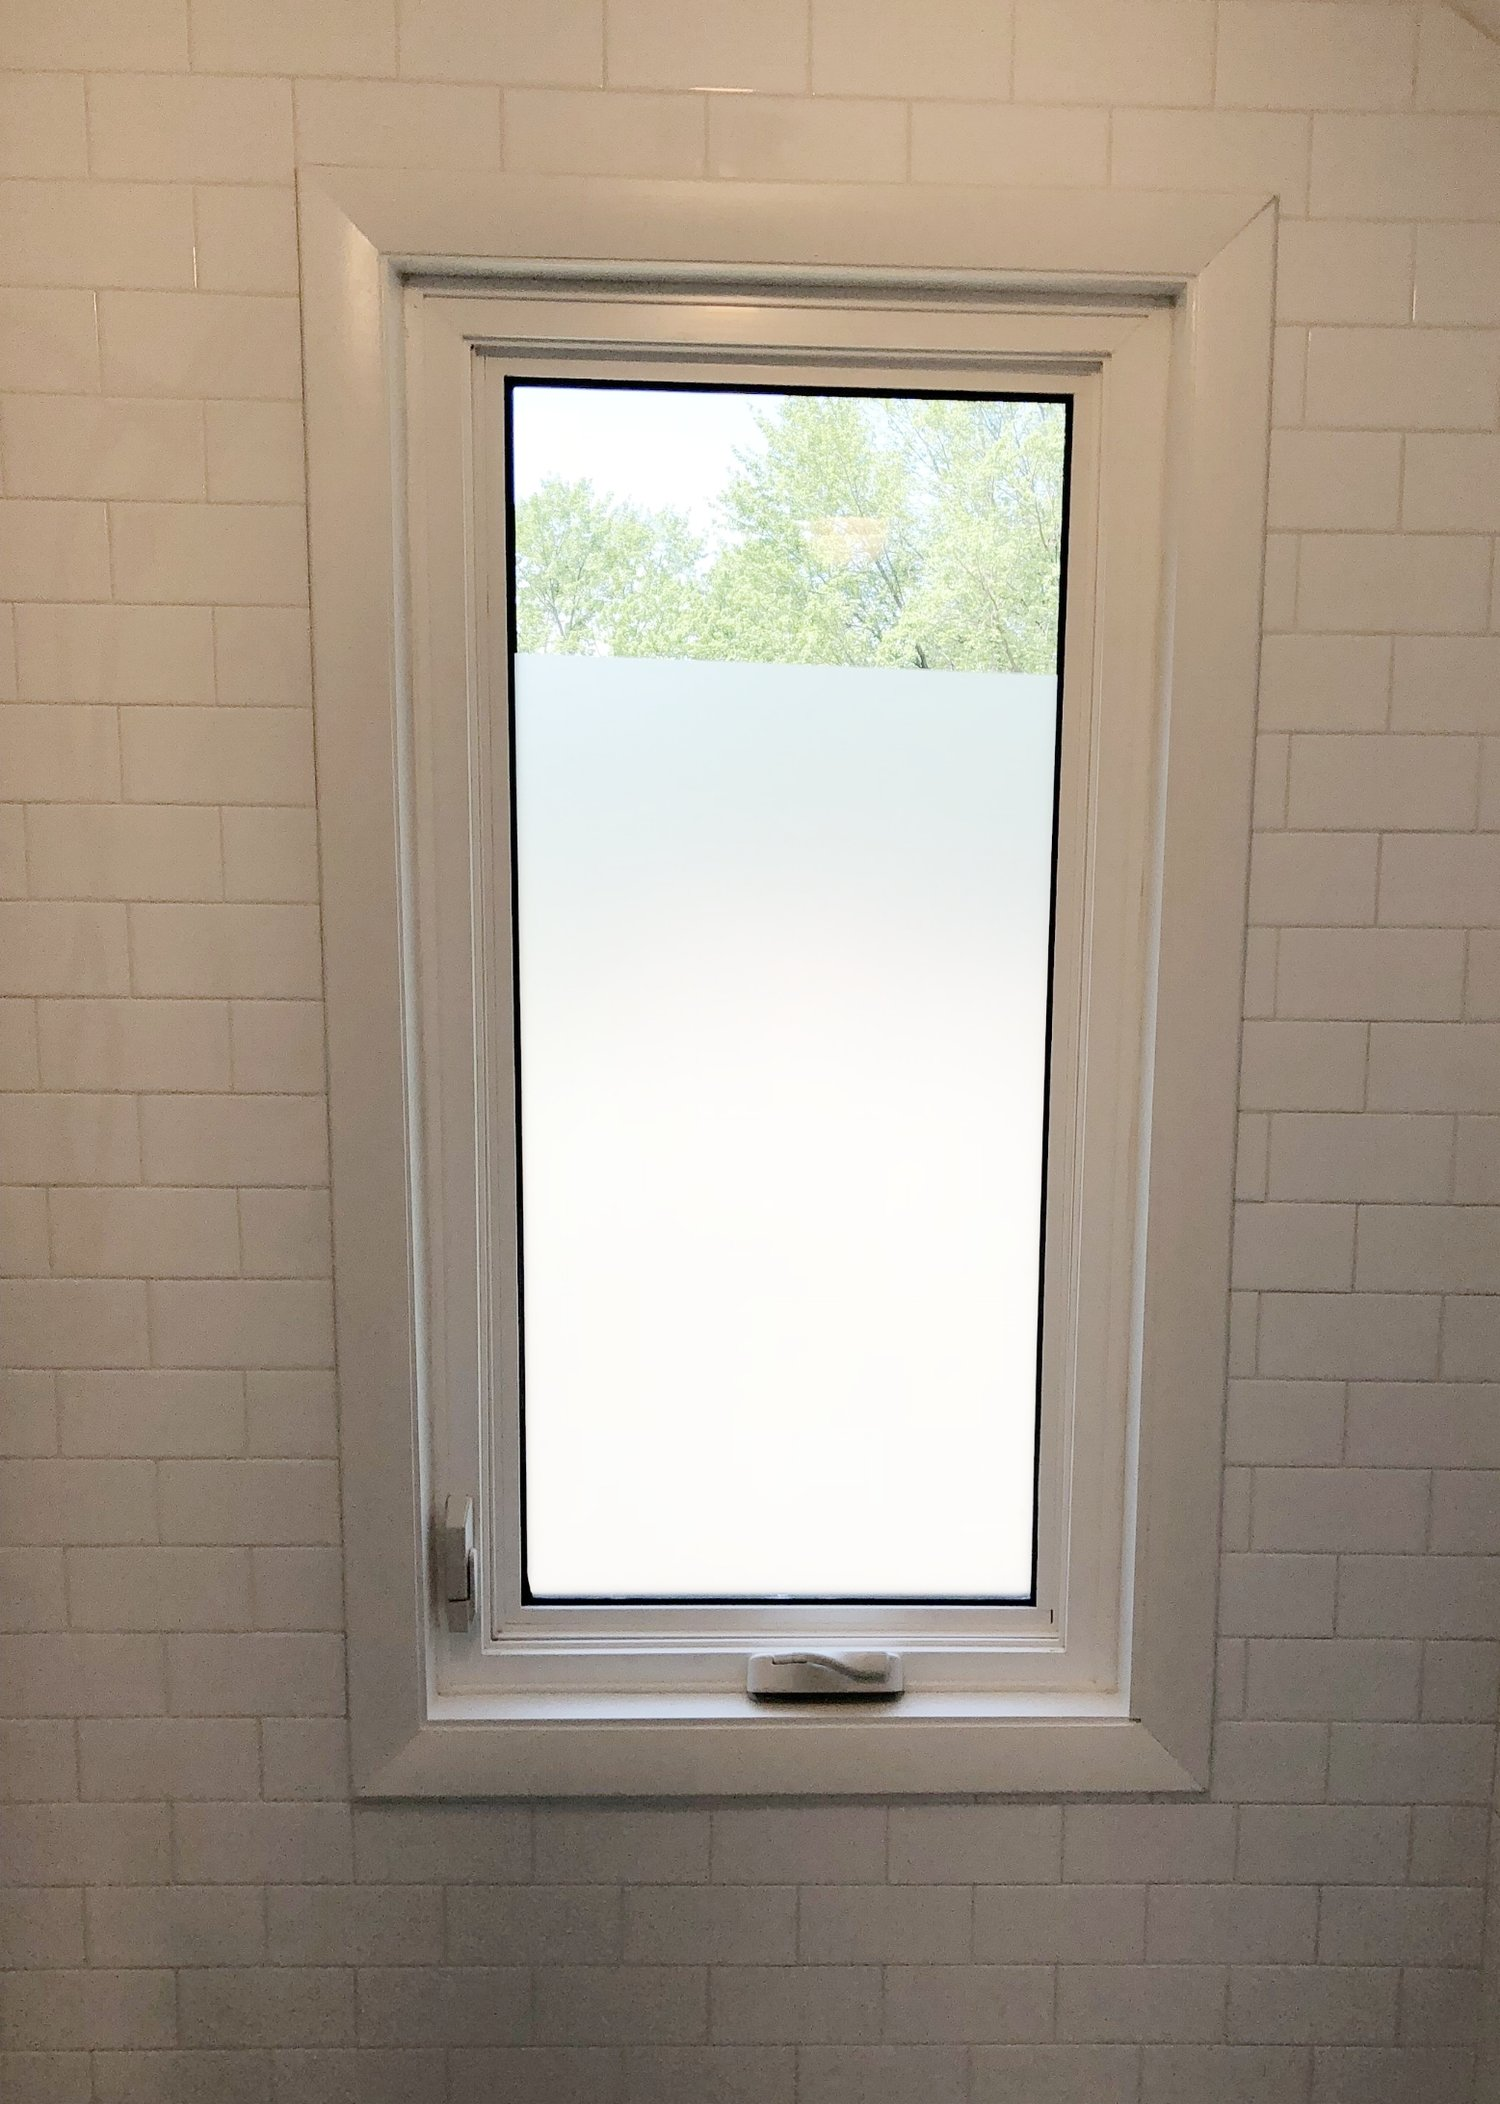 How To Easily Add Privacy To A Window